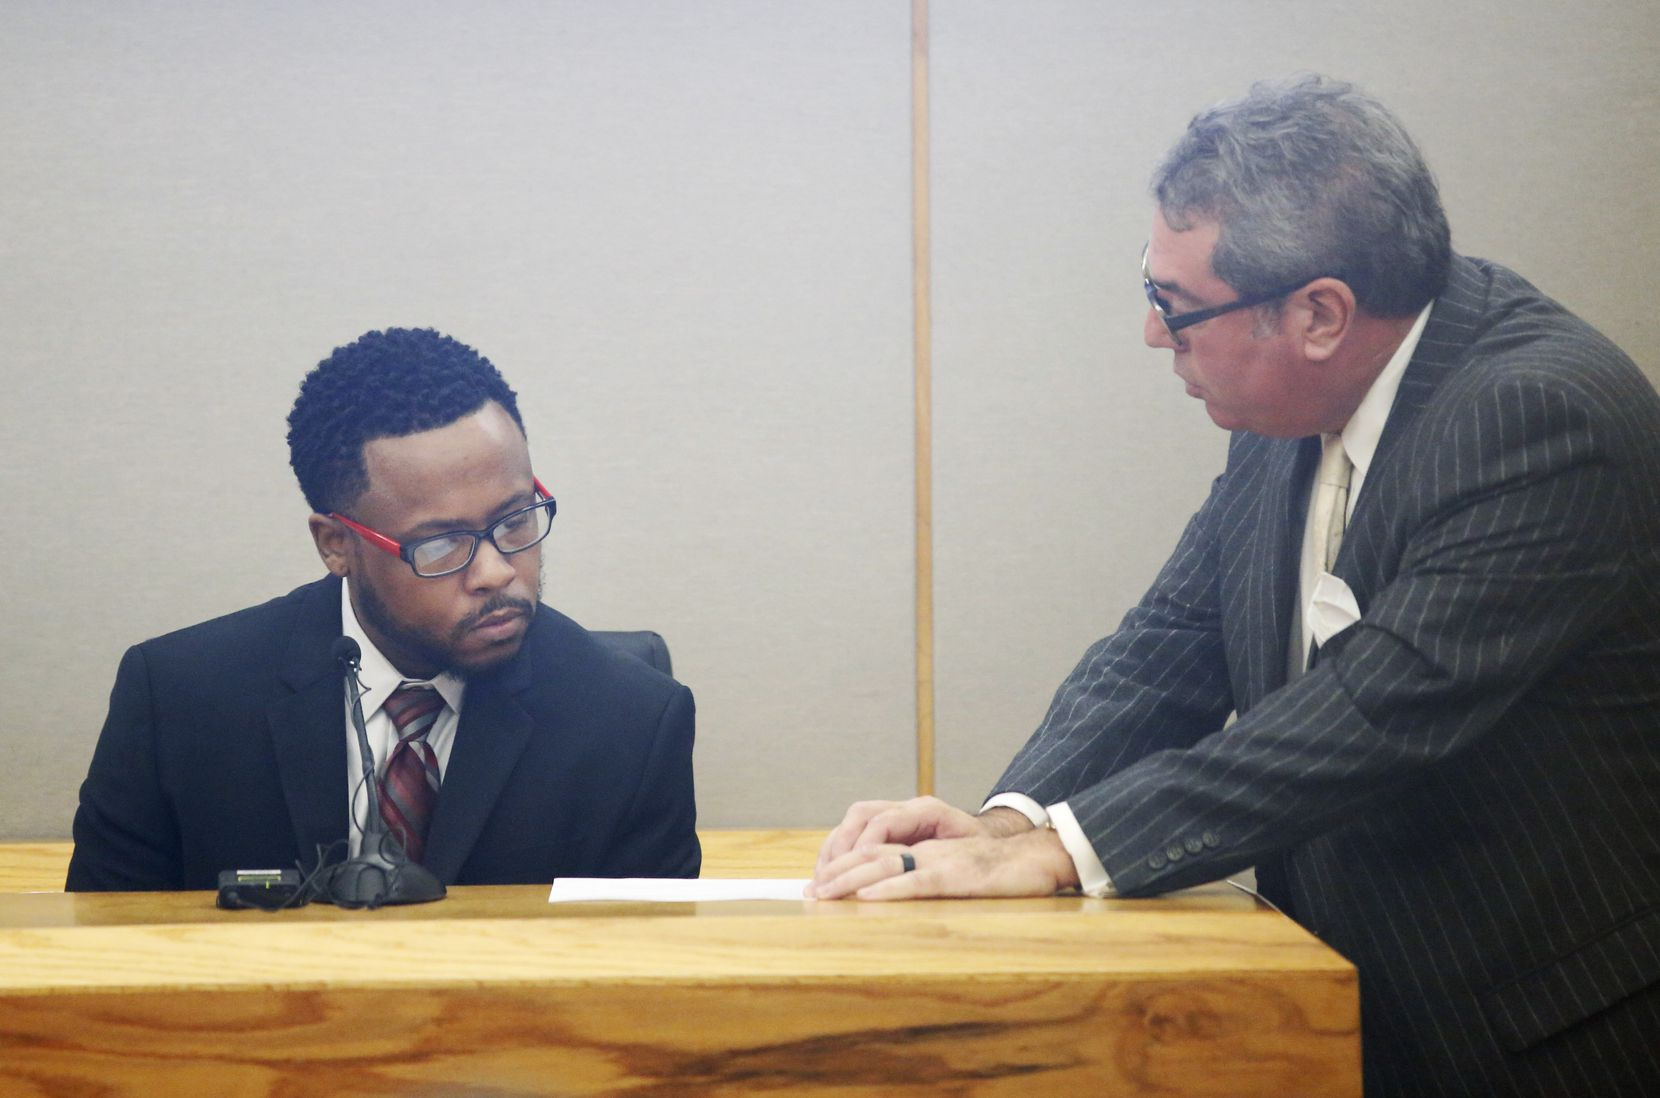 Ryan Crawford (left) answered questions from Heath Hyde while on the stand during a hearing for Kaylene Bowen-Wright in the 194th District Court at the Frank Crowley Courts Building in Dallas, on Friday. Bowen-Wright has admitted to subjecting her son Christopher Bowen to unnecessary surgeries, medical treatments and hospital visits over the course of eight years.